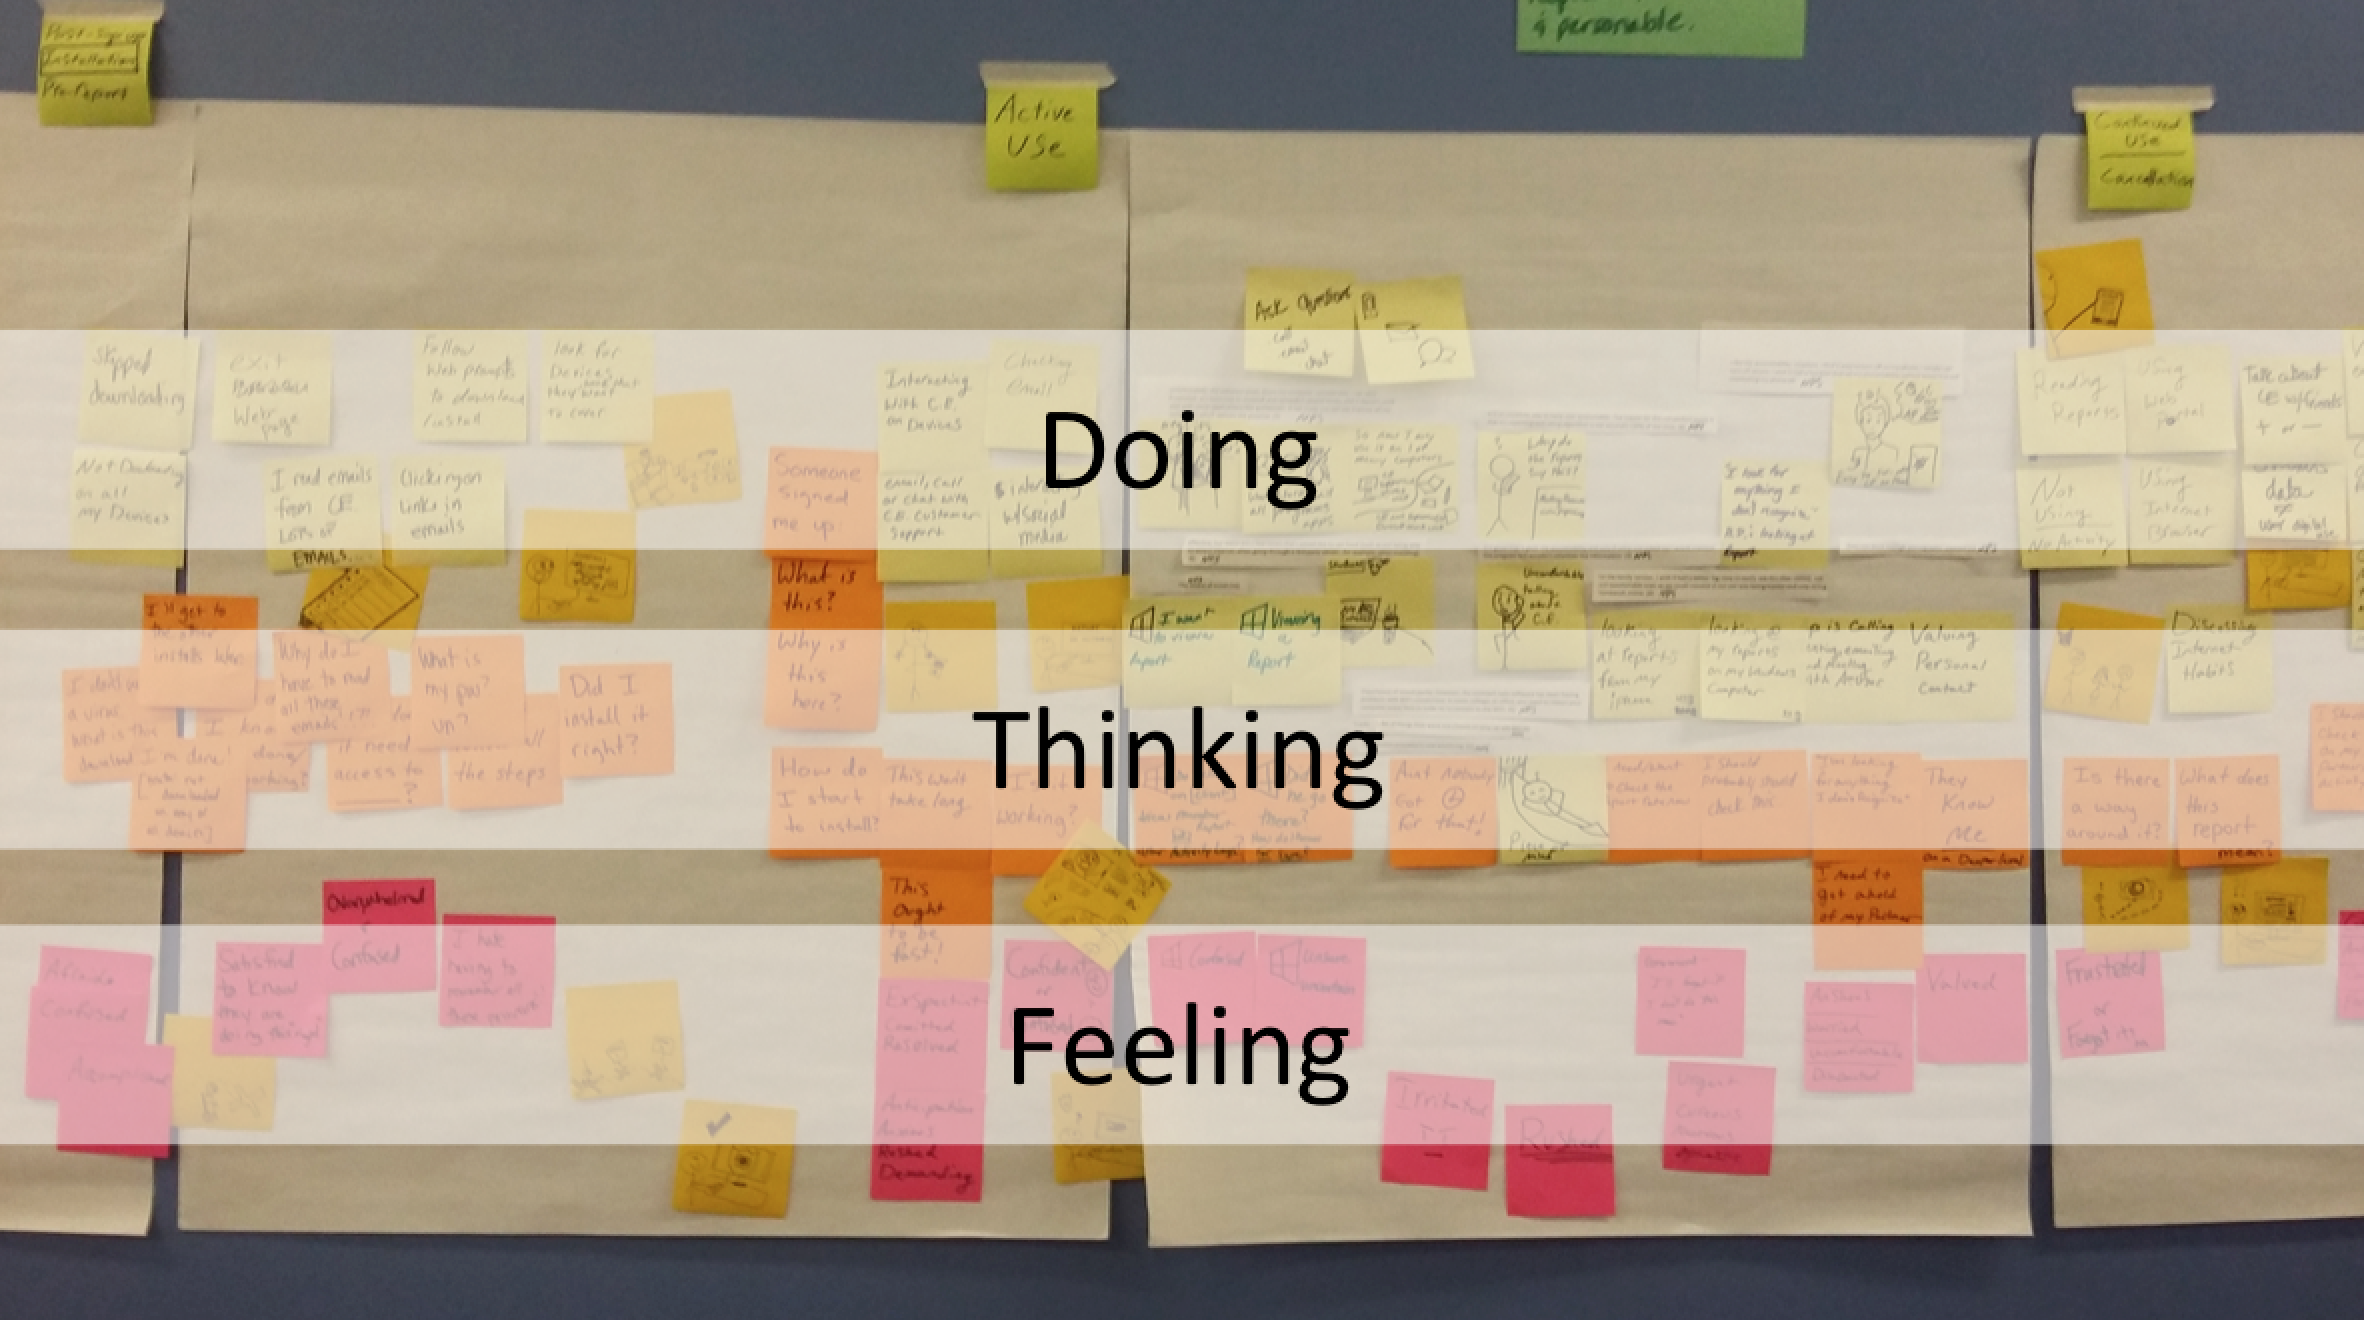 Wall covered in post-it notes grouped by the concepts of doing, thinkinig, and feeling.